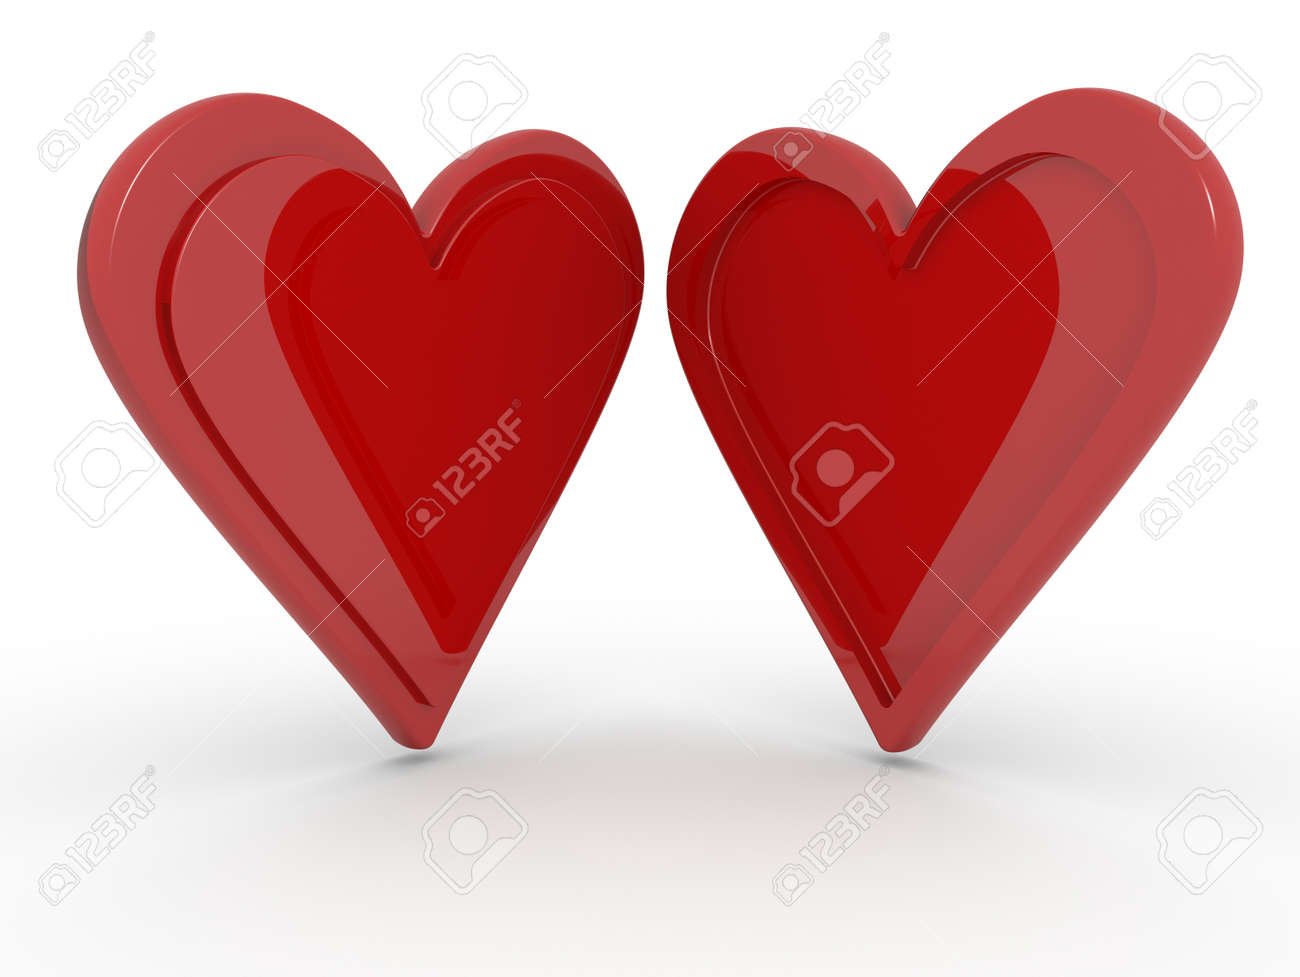 Two hearts together isolated on a white background, opposite profiles concept of opposites attract Stock Photo - 23475567